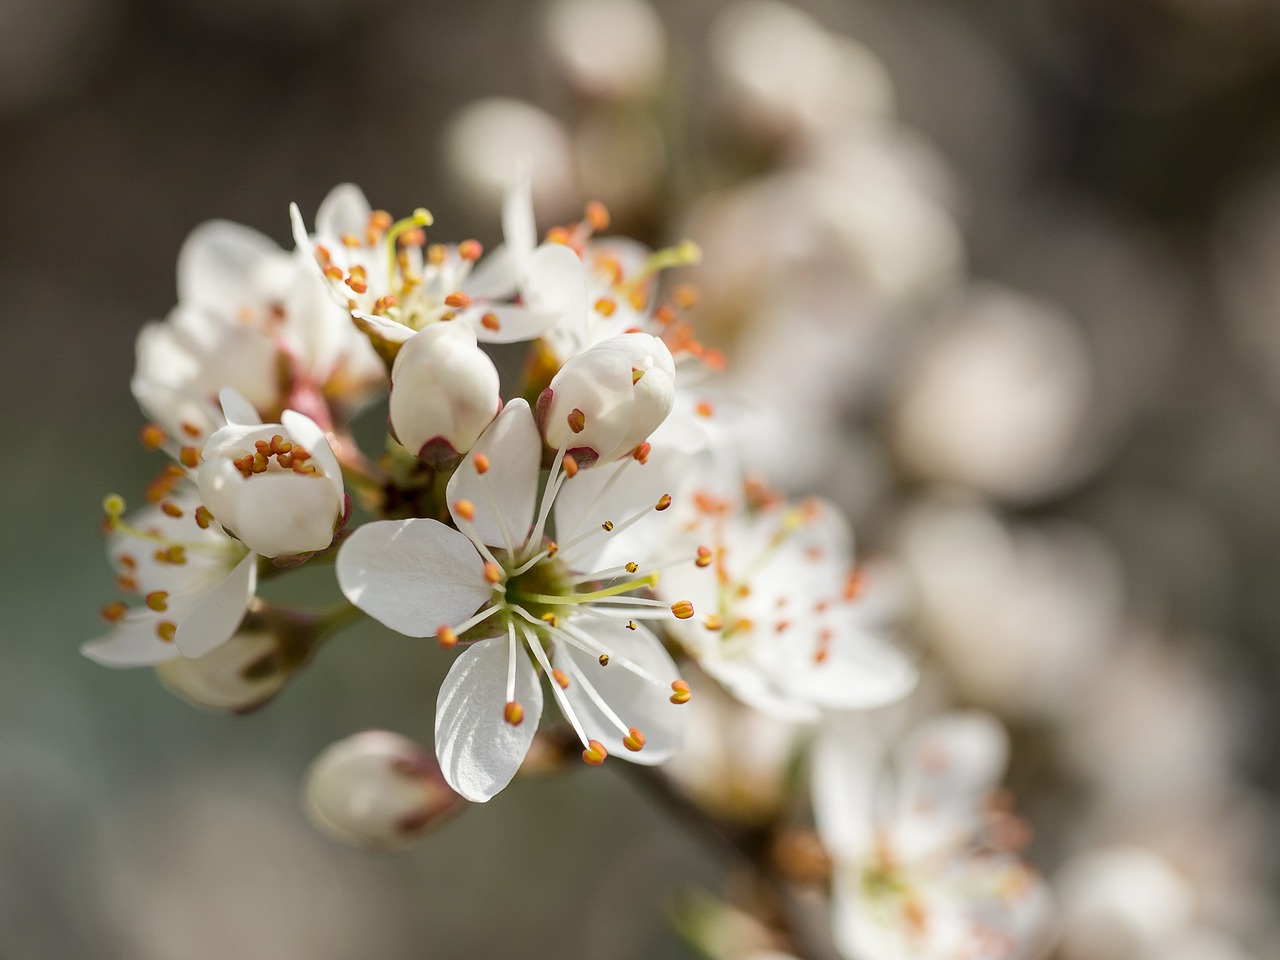 blackthorn schlehe flowers free photo